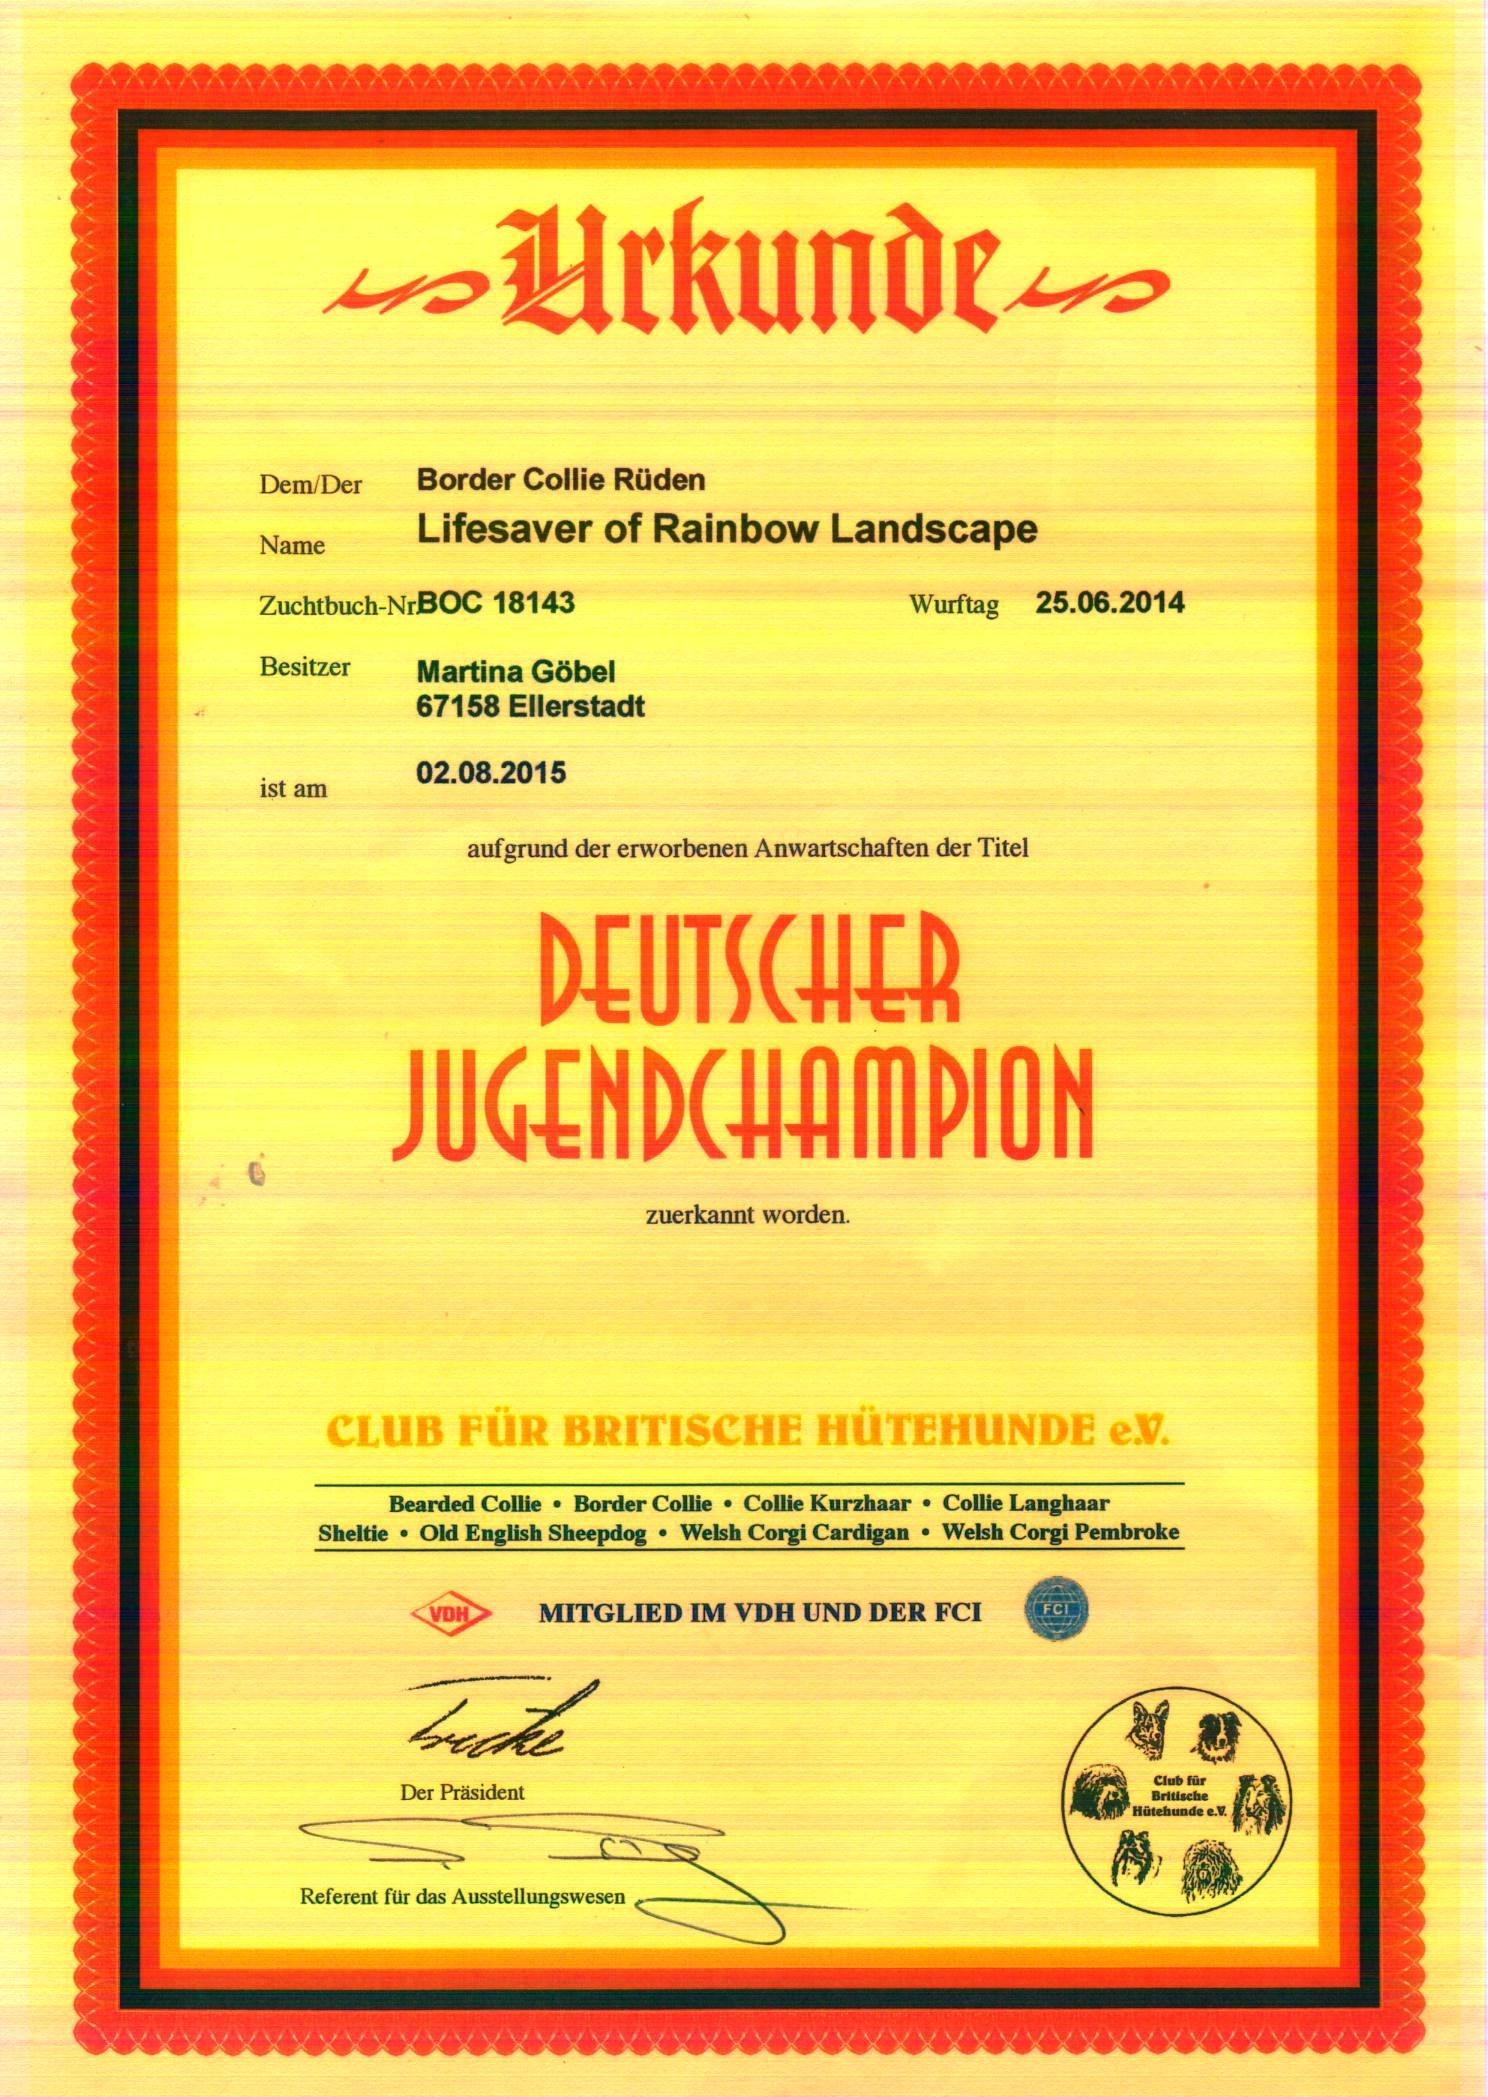 Jugendchampion Club 1